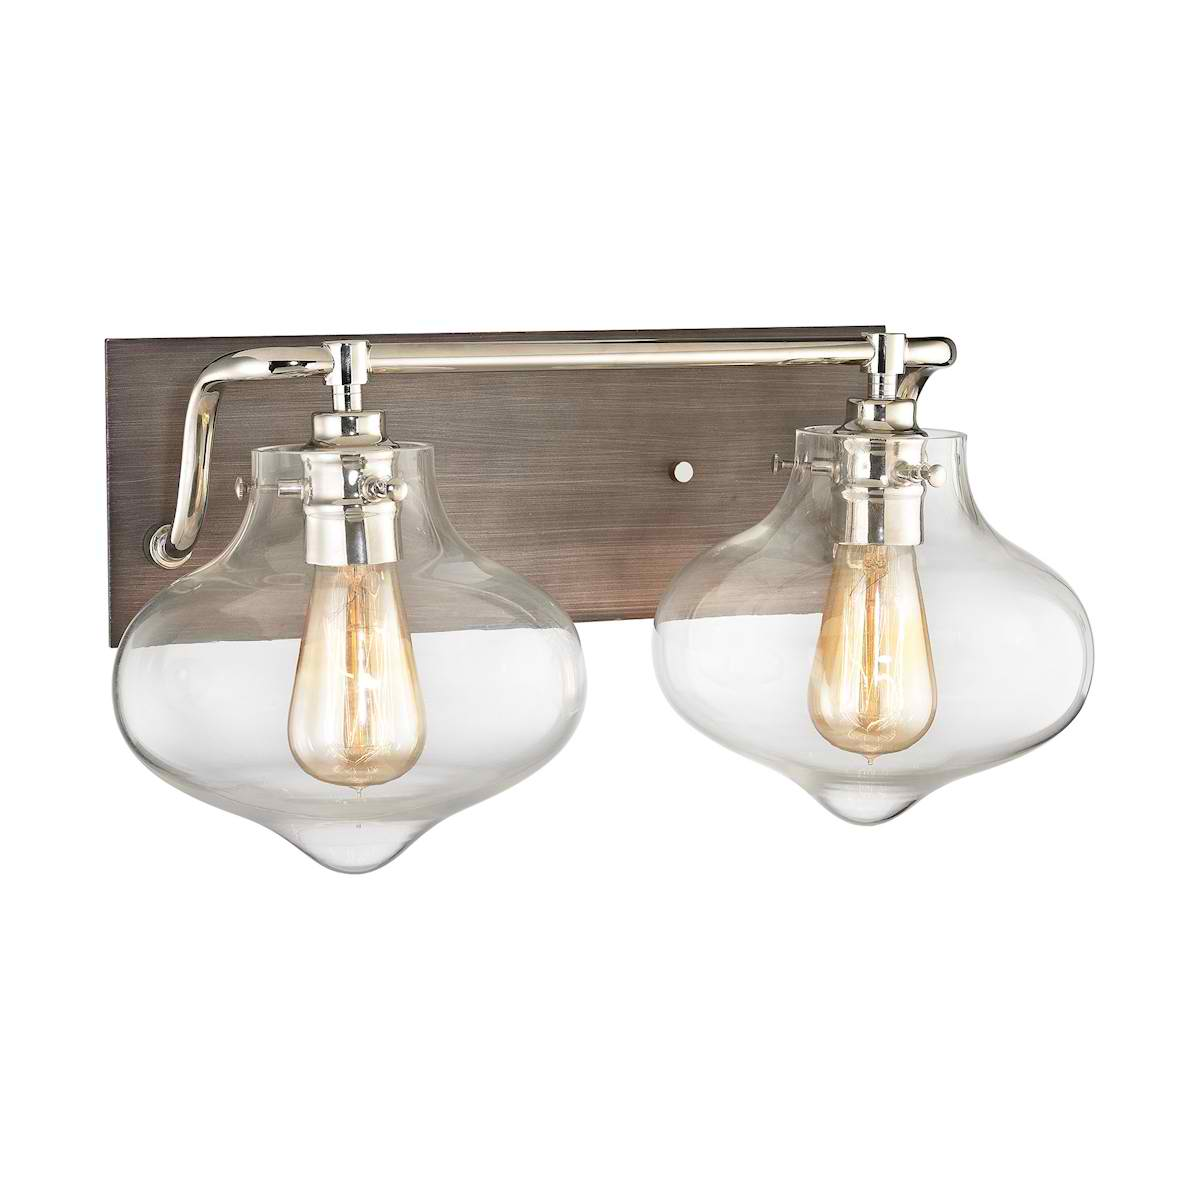 Kelsey 2 Light Vanity in Weathered Zinc with Polished Nickel Accents